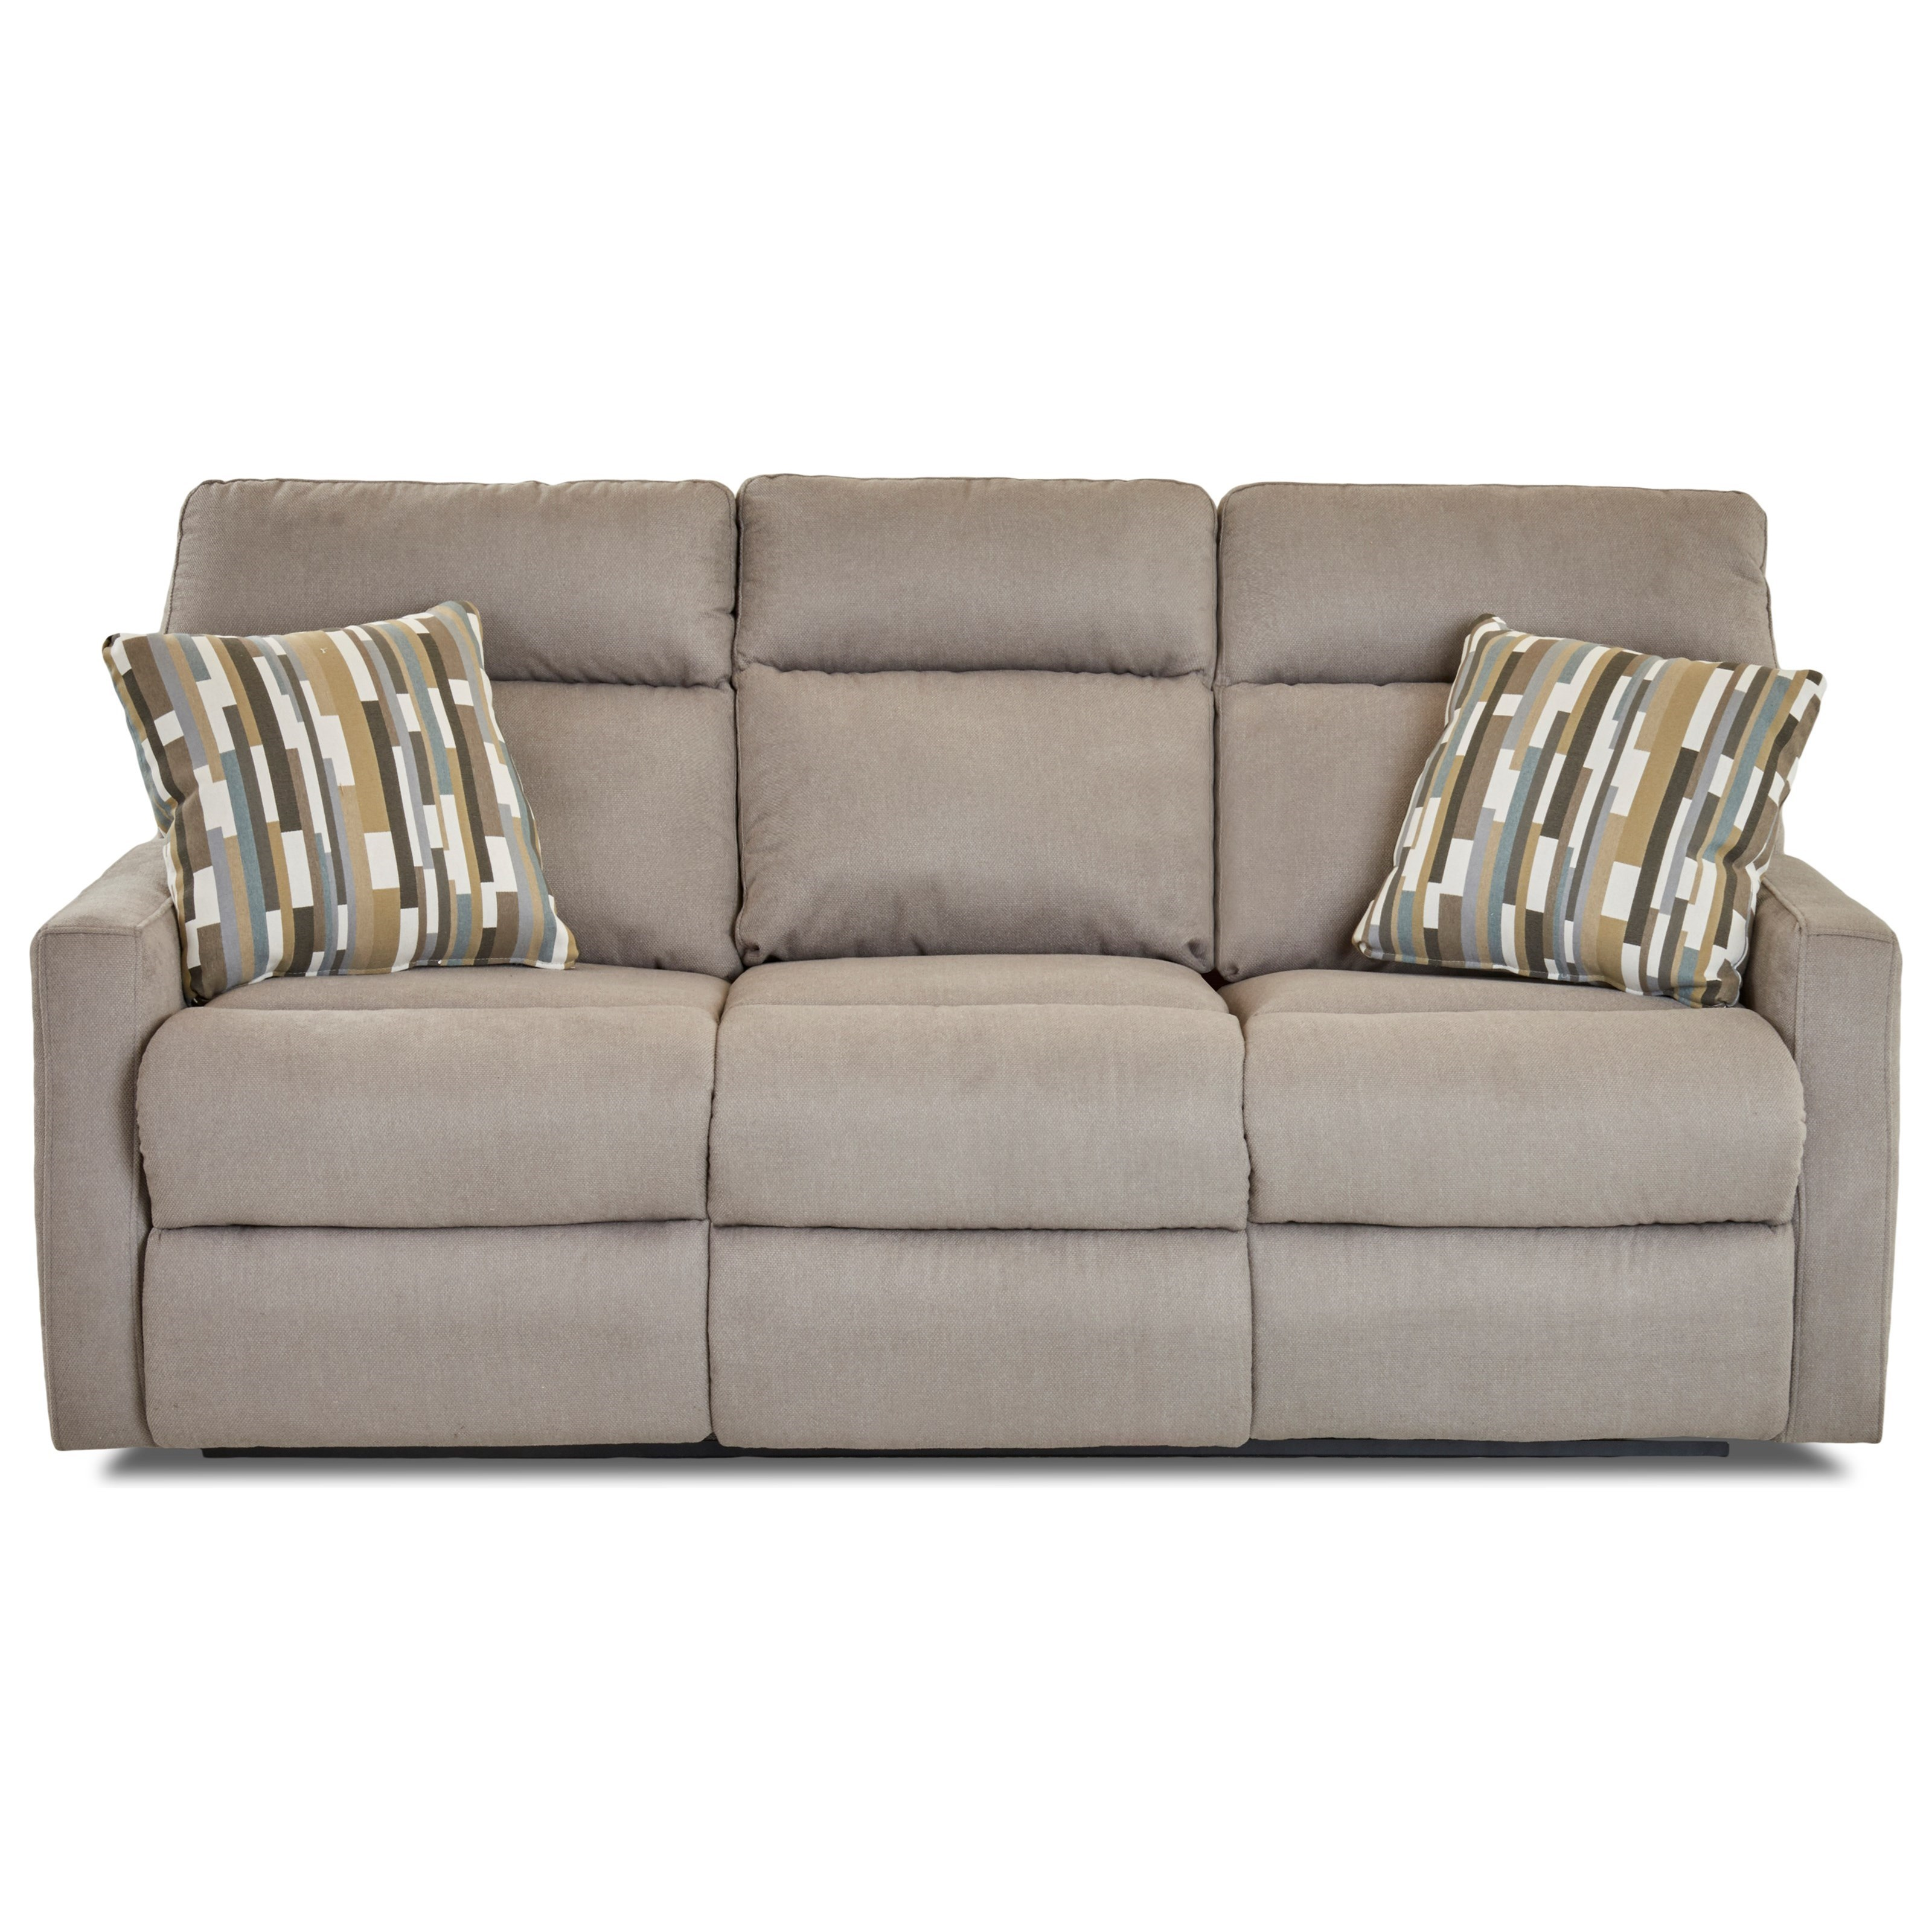 Daphne Reclining Sofa w/ Pillows by Klaussner at Johnny Janosik